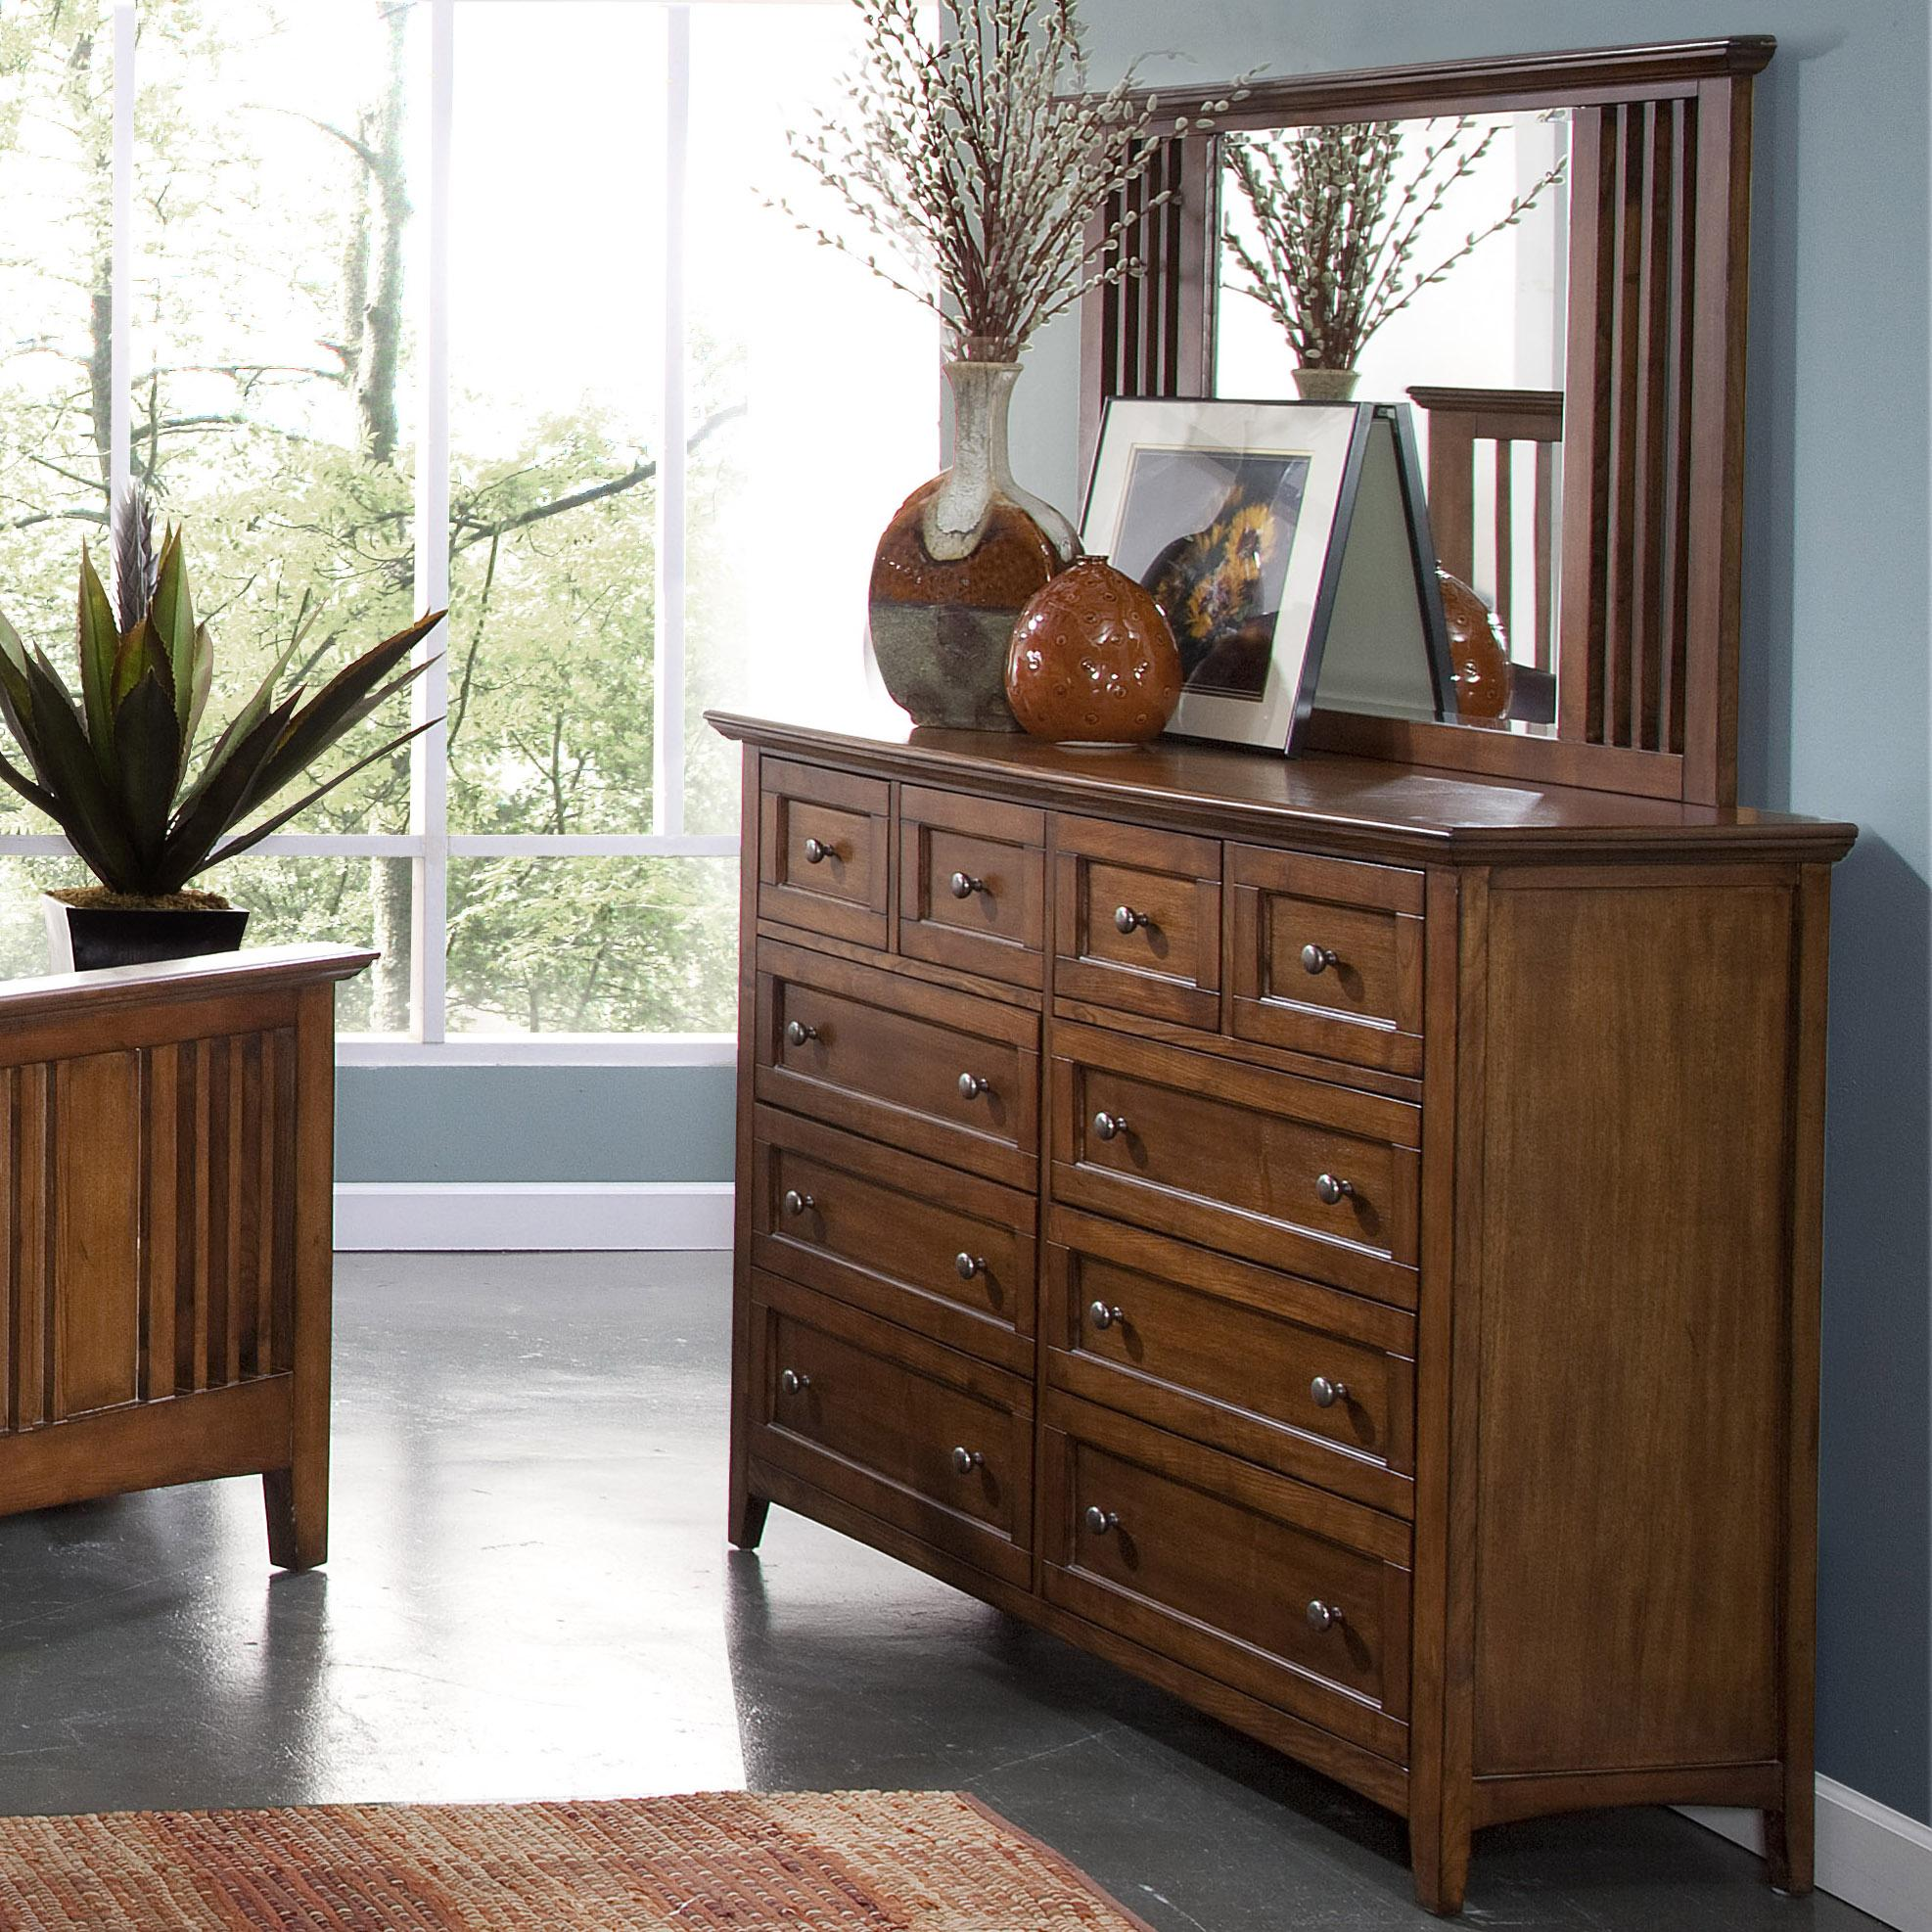 New Classic Logan Dresser and Mirror Set - Item Number: 00-100-050+060